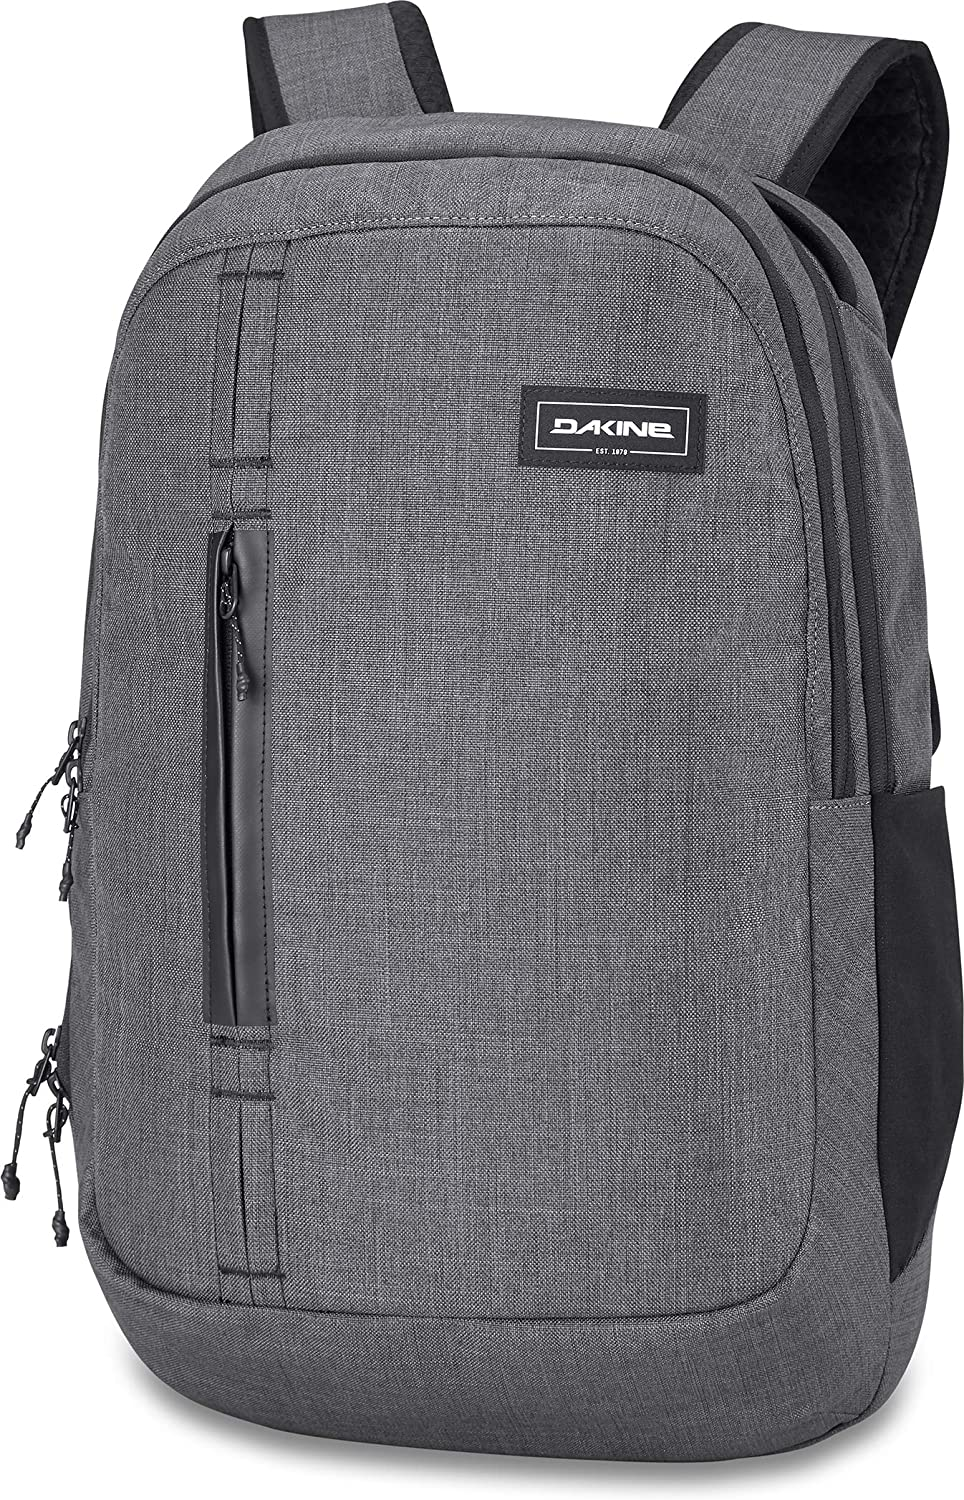 Dakine Men's Laptop